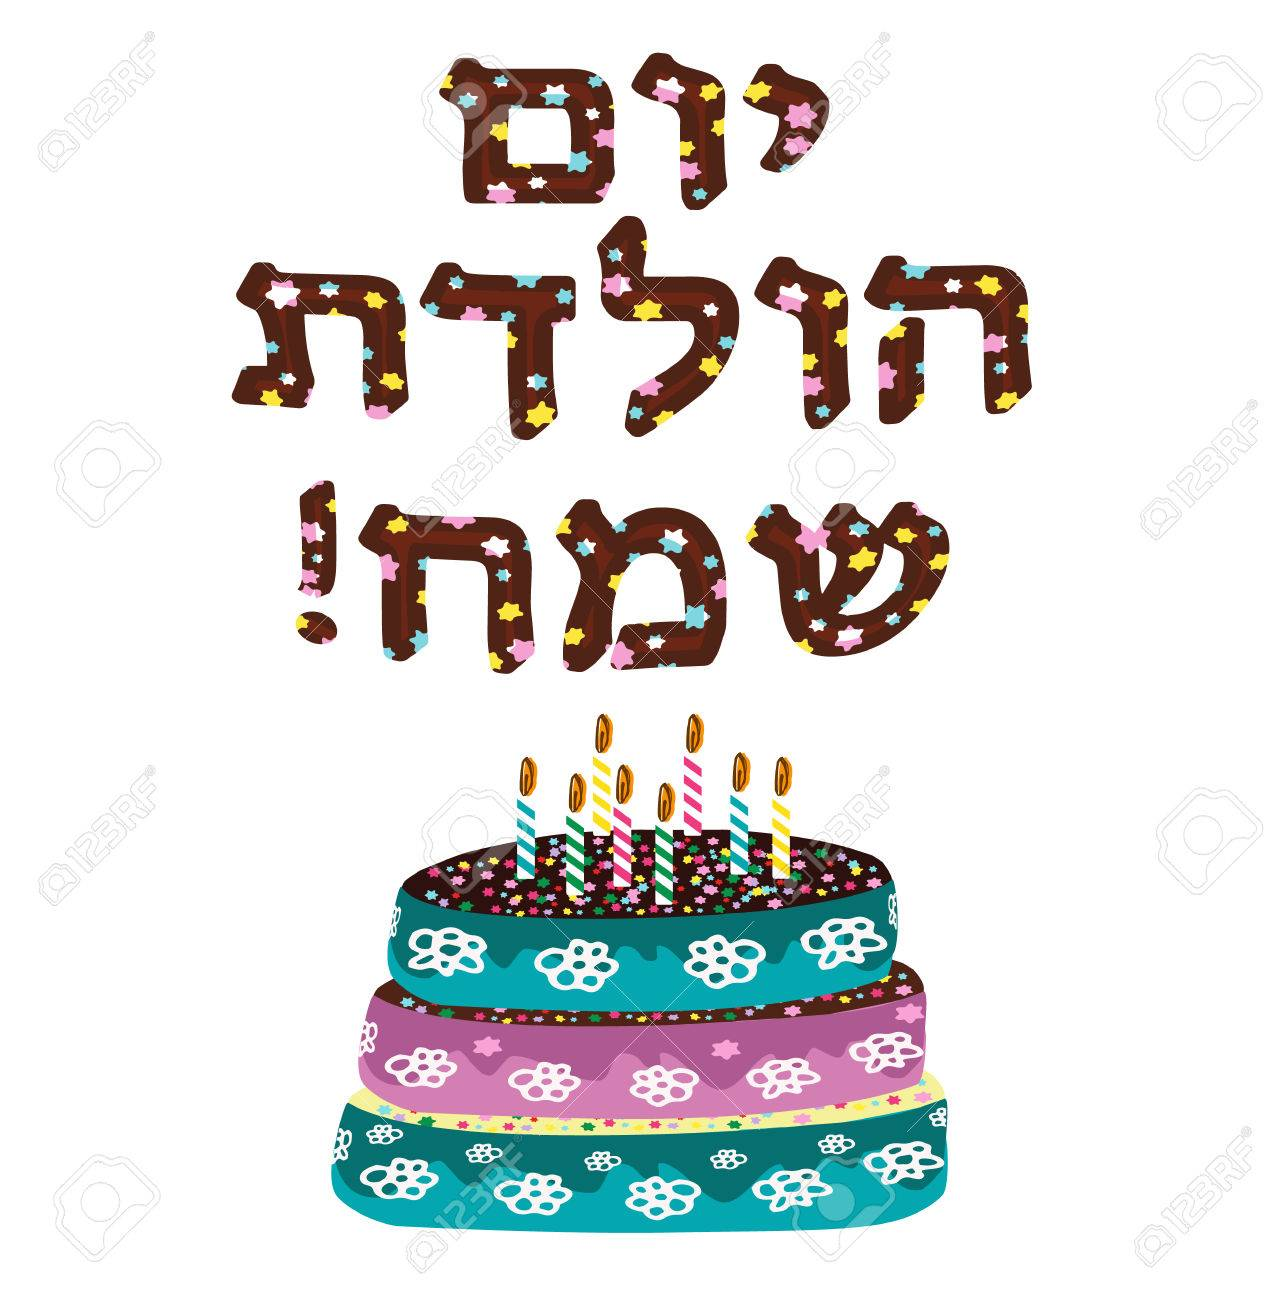 Beautiful Chocolate Cake With Birthday Candles The Inscription Royalty Free Cliparts Vectors And Stock Illustration Image 80880401